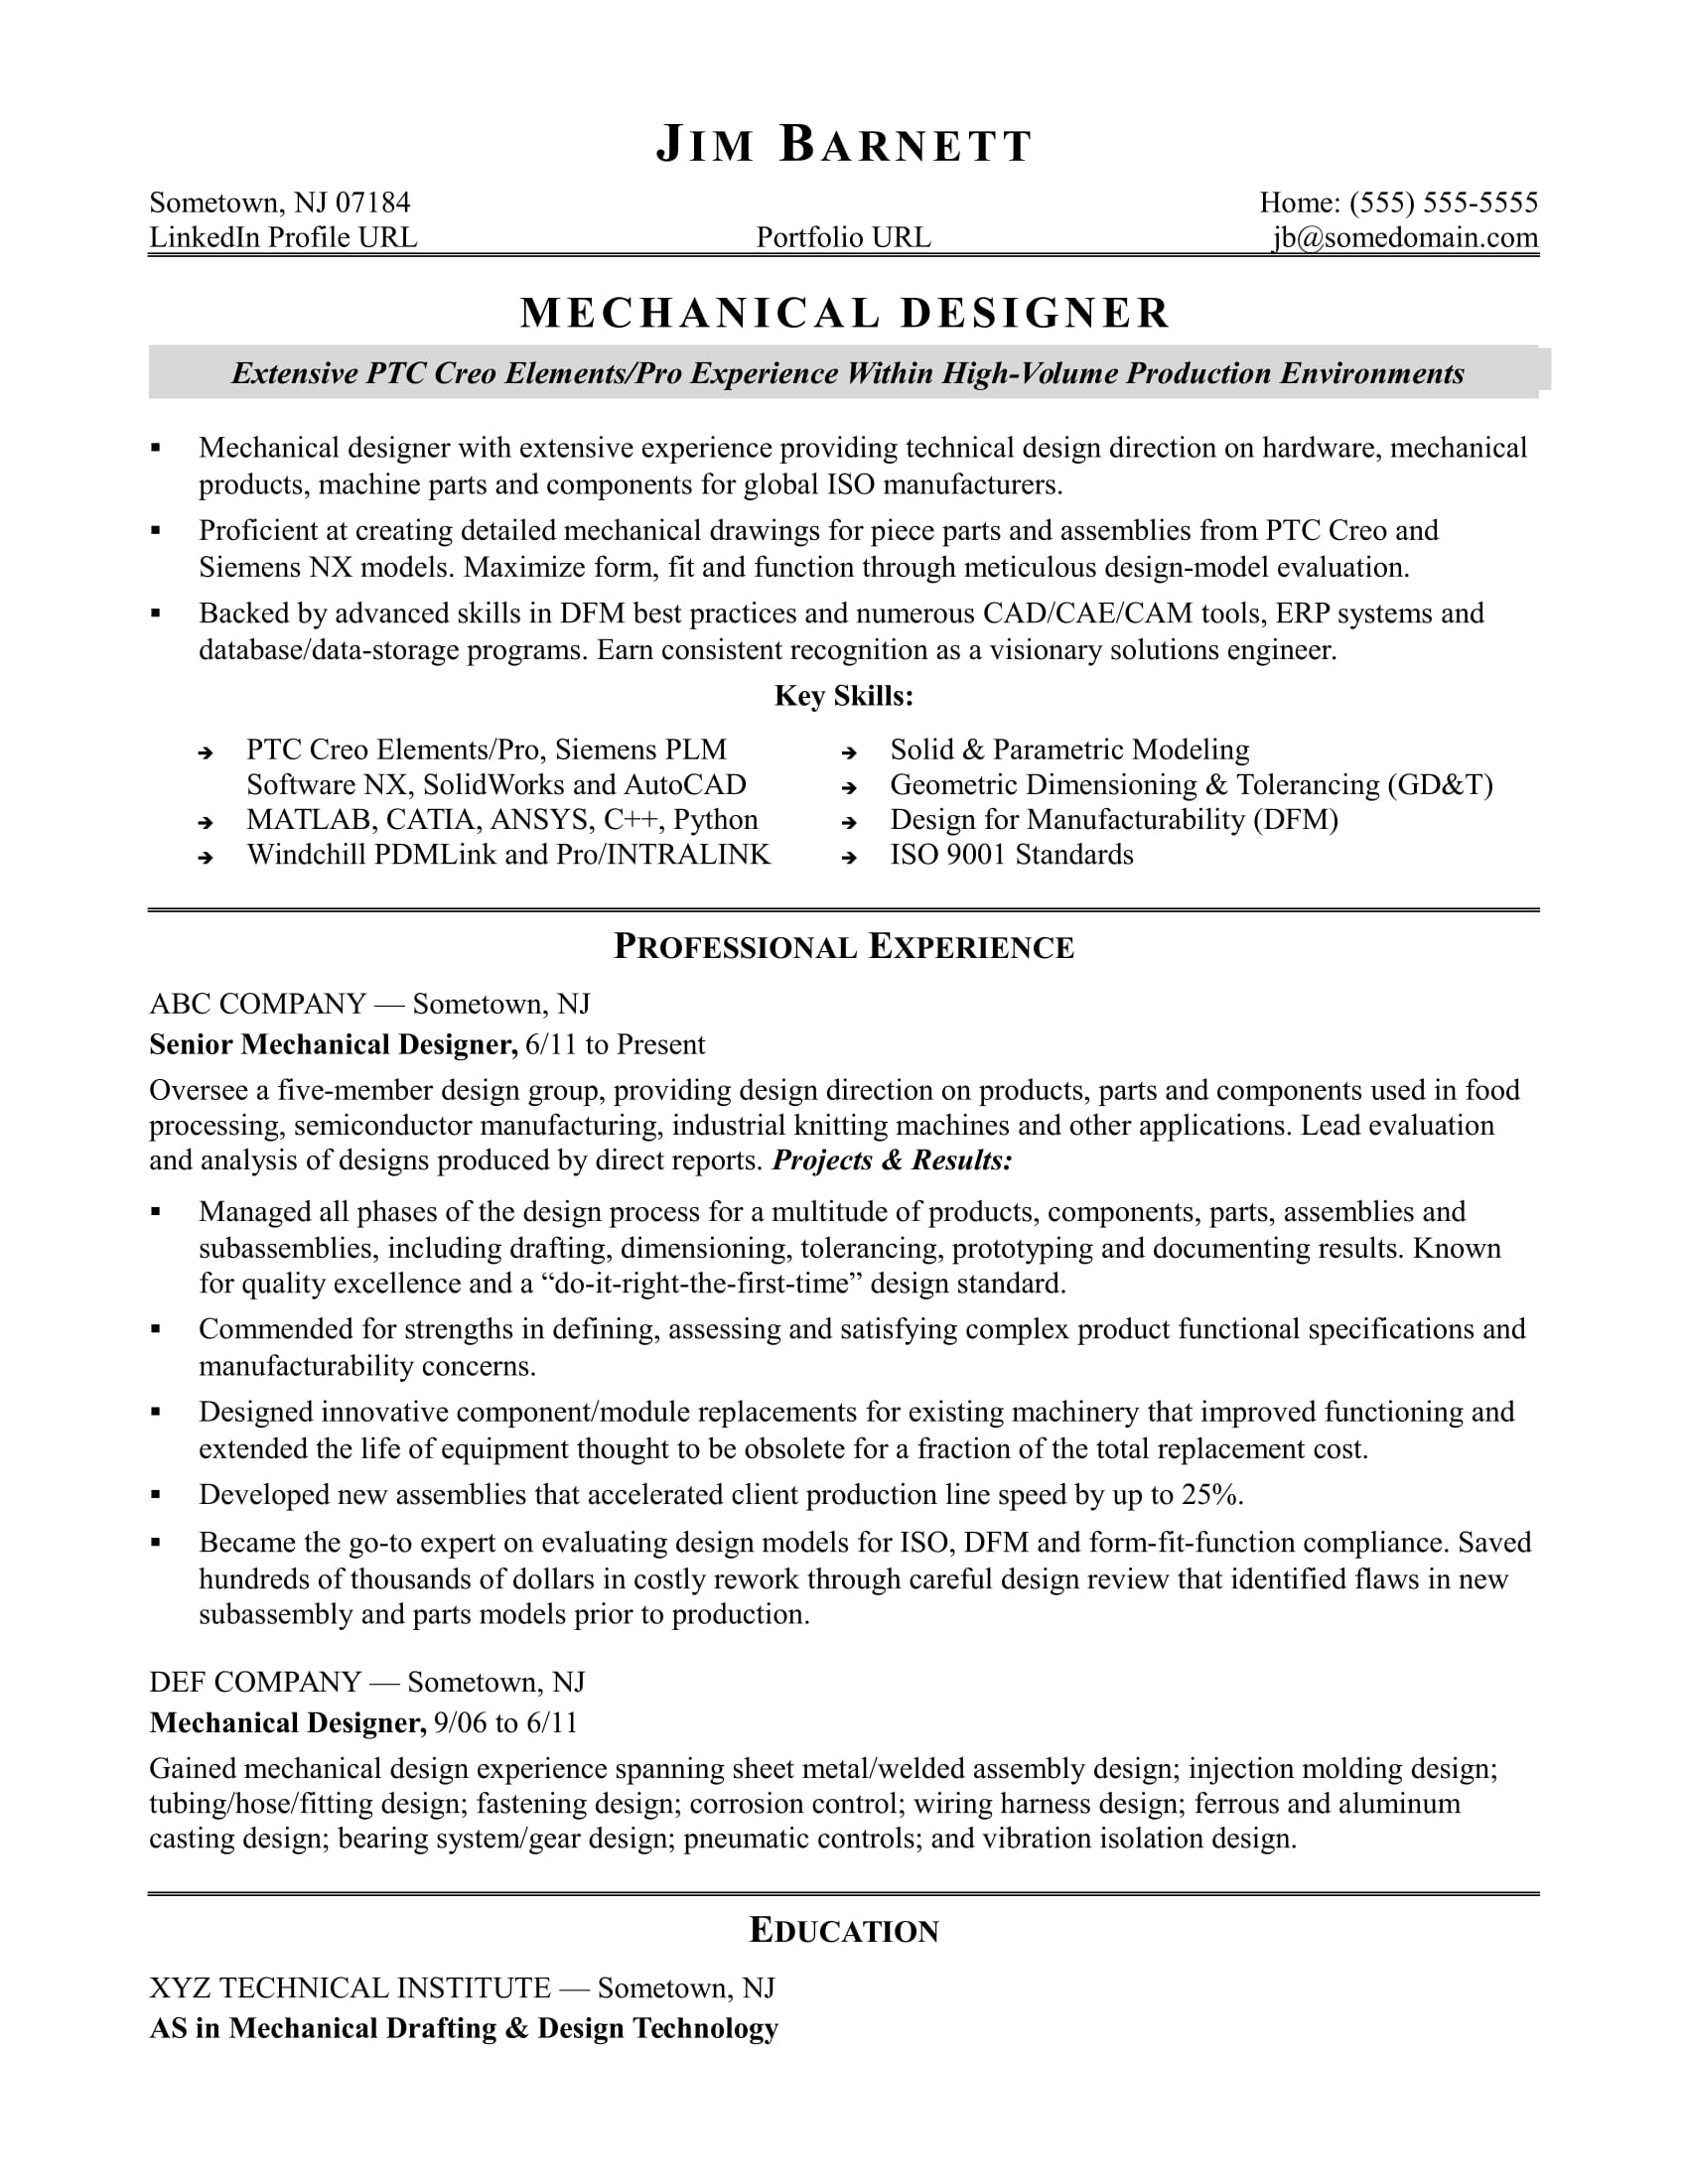 sample resume for an experienced mechanical designer - Unigraphics Designer Resume